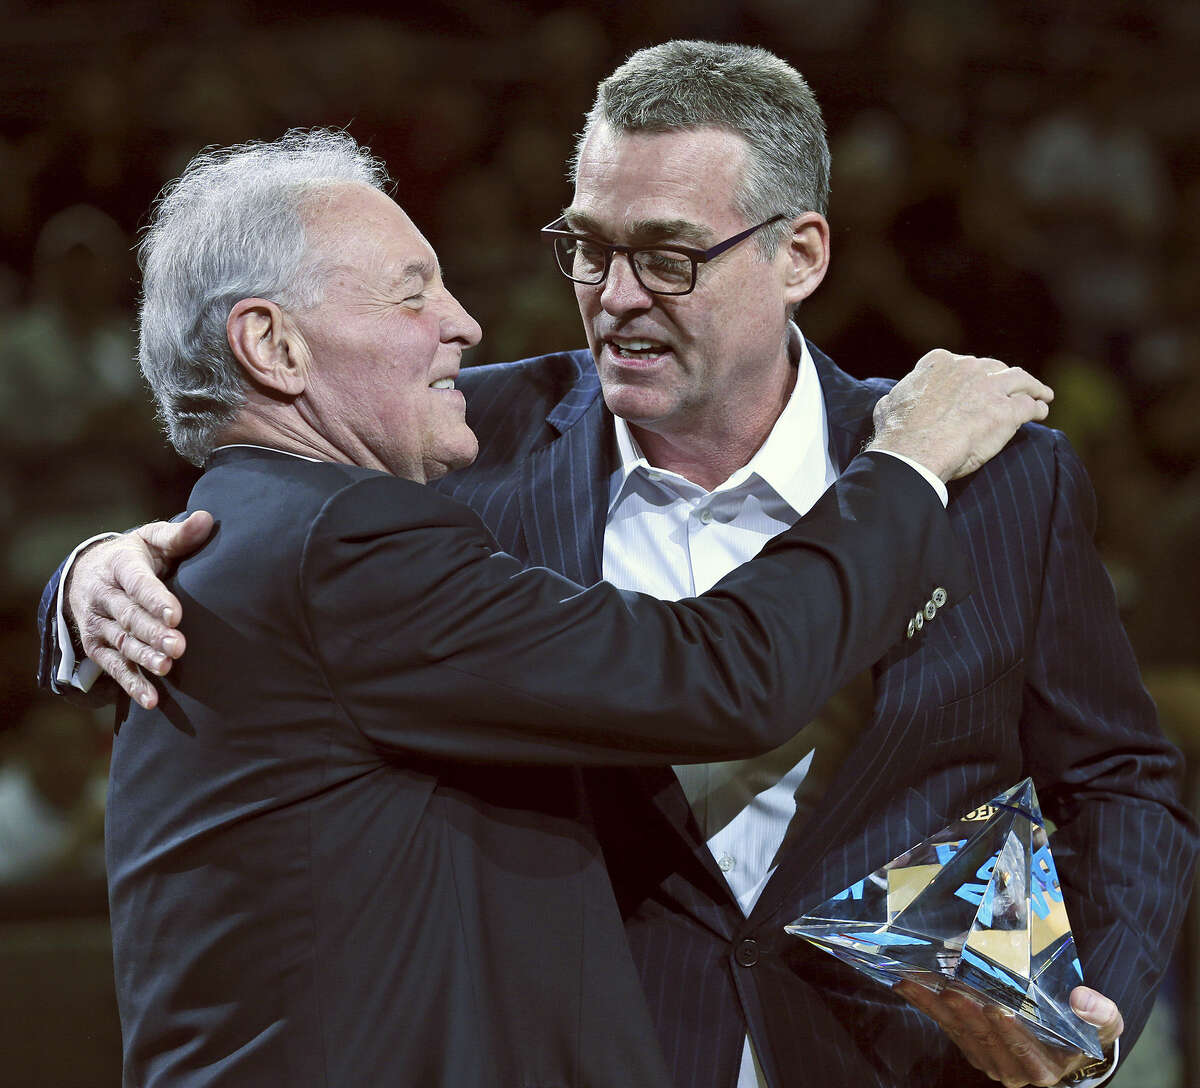 Peter Holt, left, heads Spurs Sports & Entertainment, the organization Spurs shareholder Charlie Amato thinks should seek controlling interest in any major league franchise that moves to San Antonio.